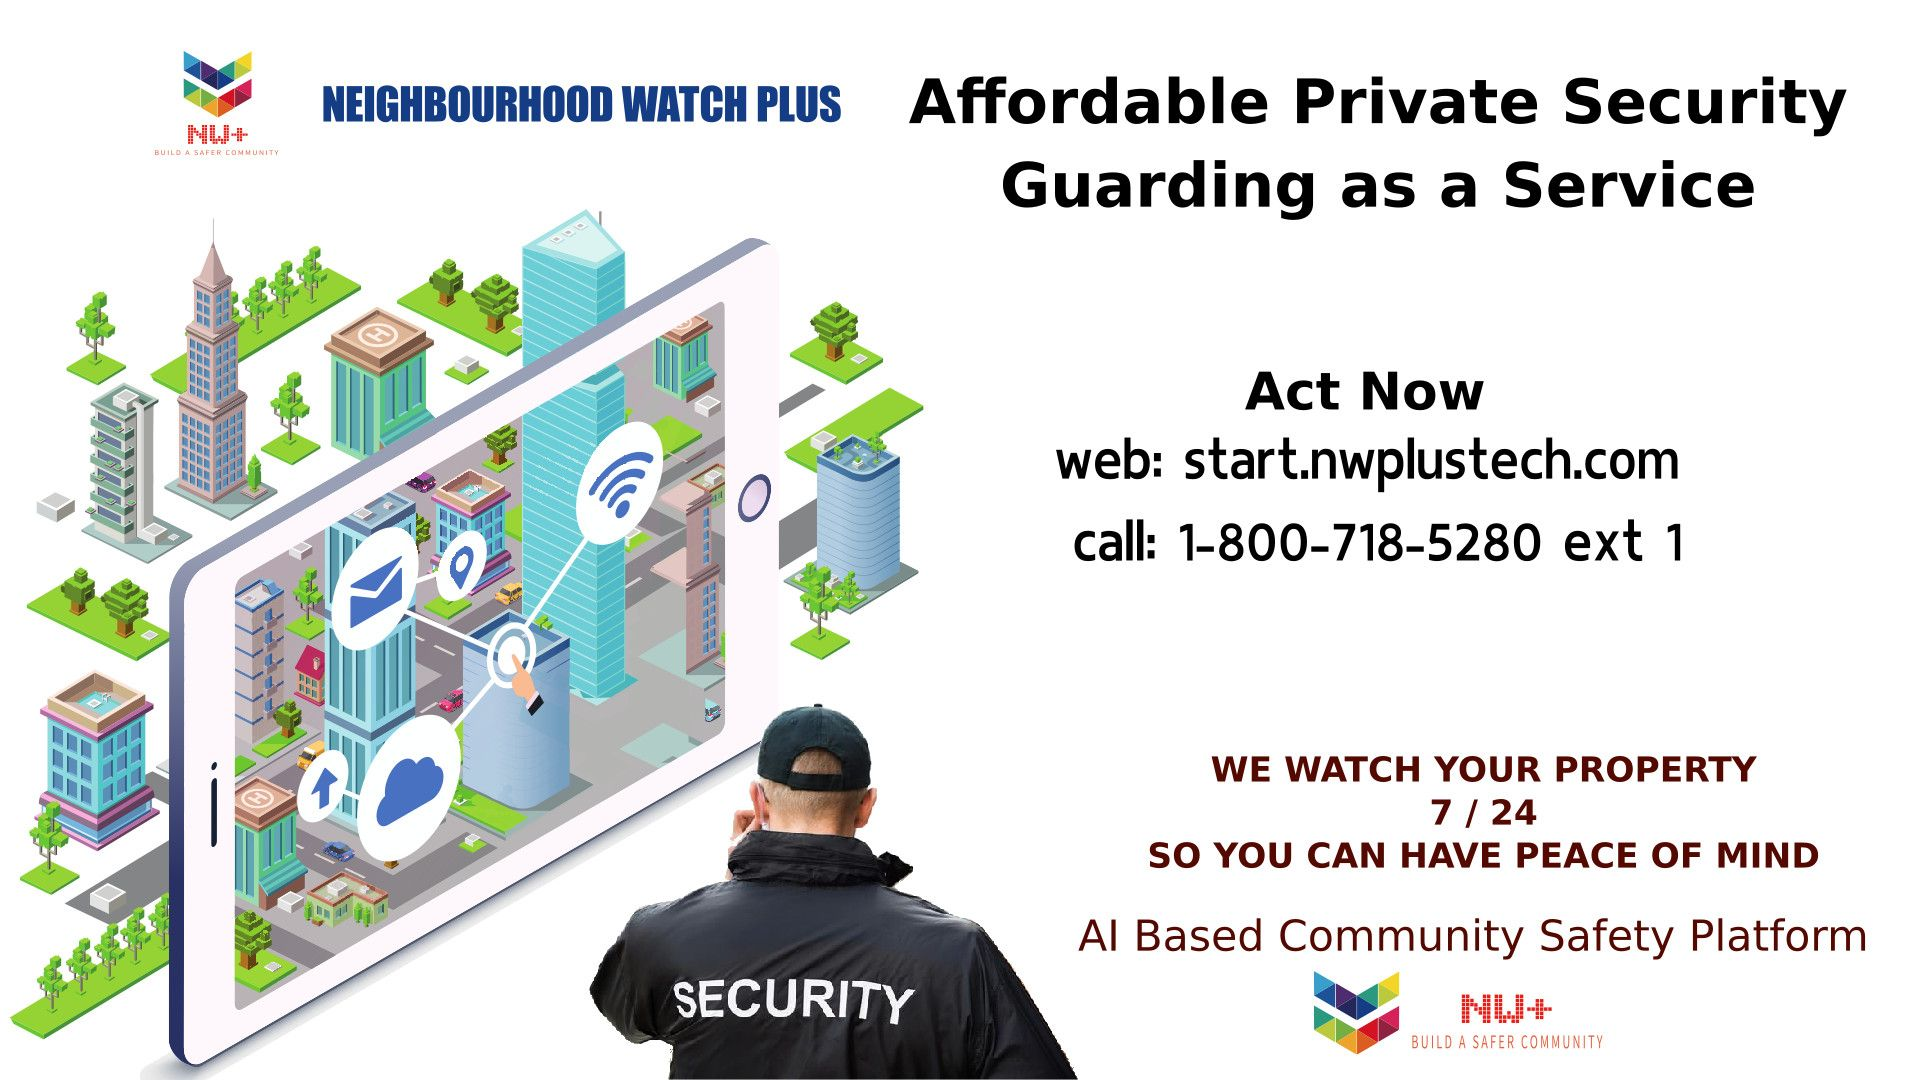 nwp-affordable-guarding-tv-1-1